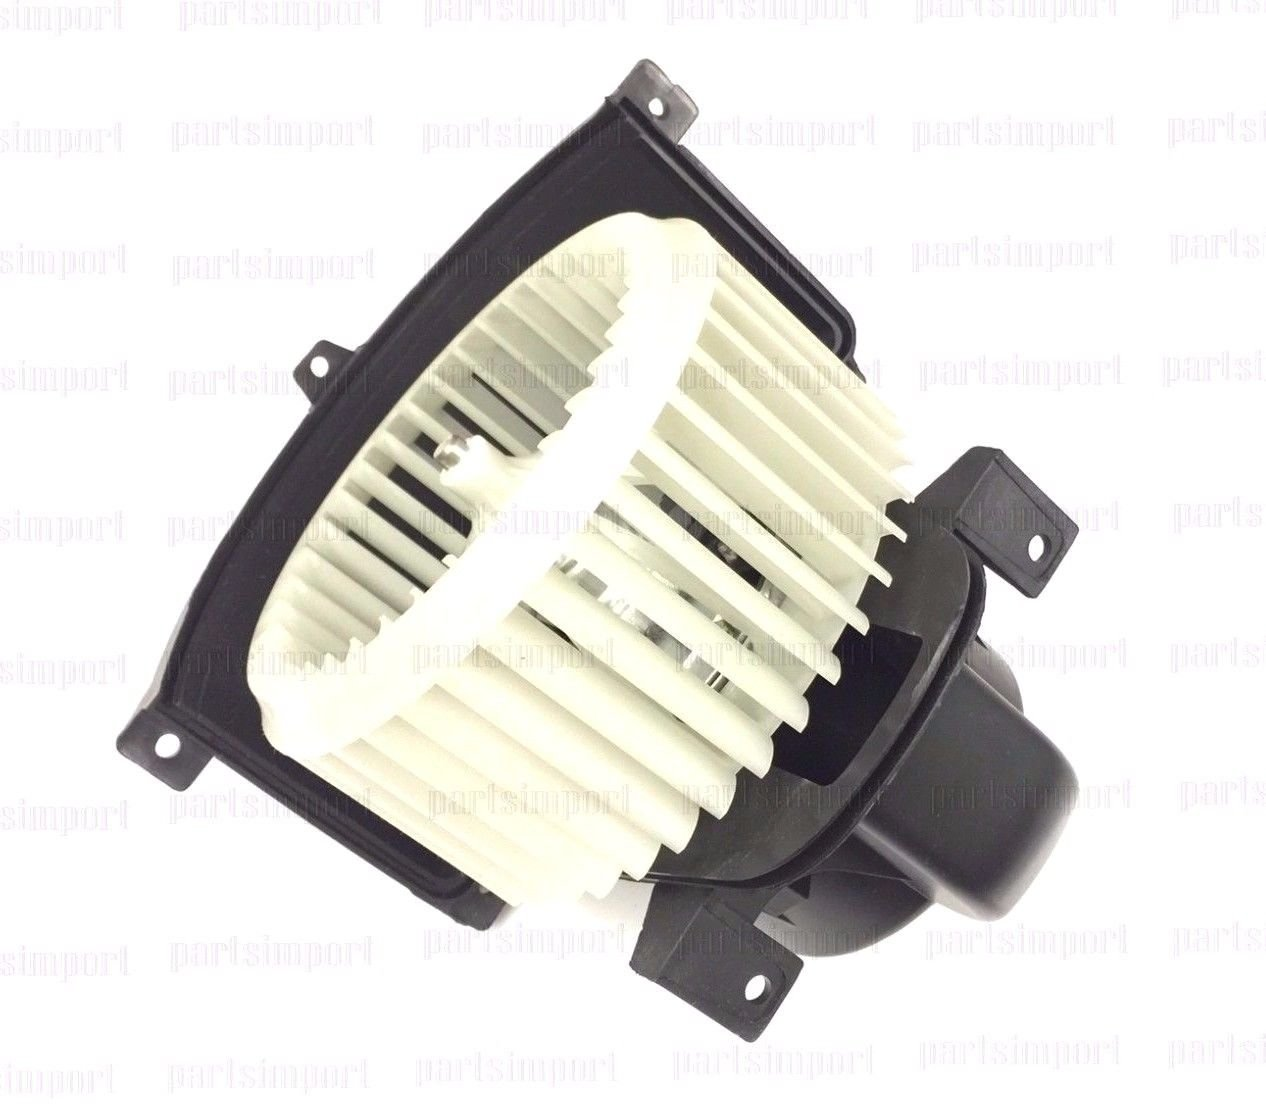 Front Heater /& A//C Blower Motor with Cage for VW Touareg Porsche Cayenne Audi Q7